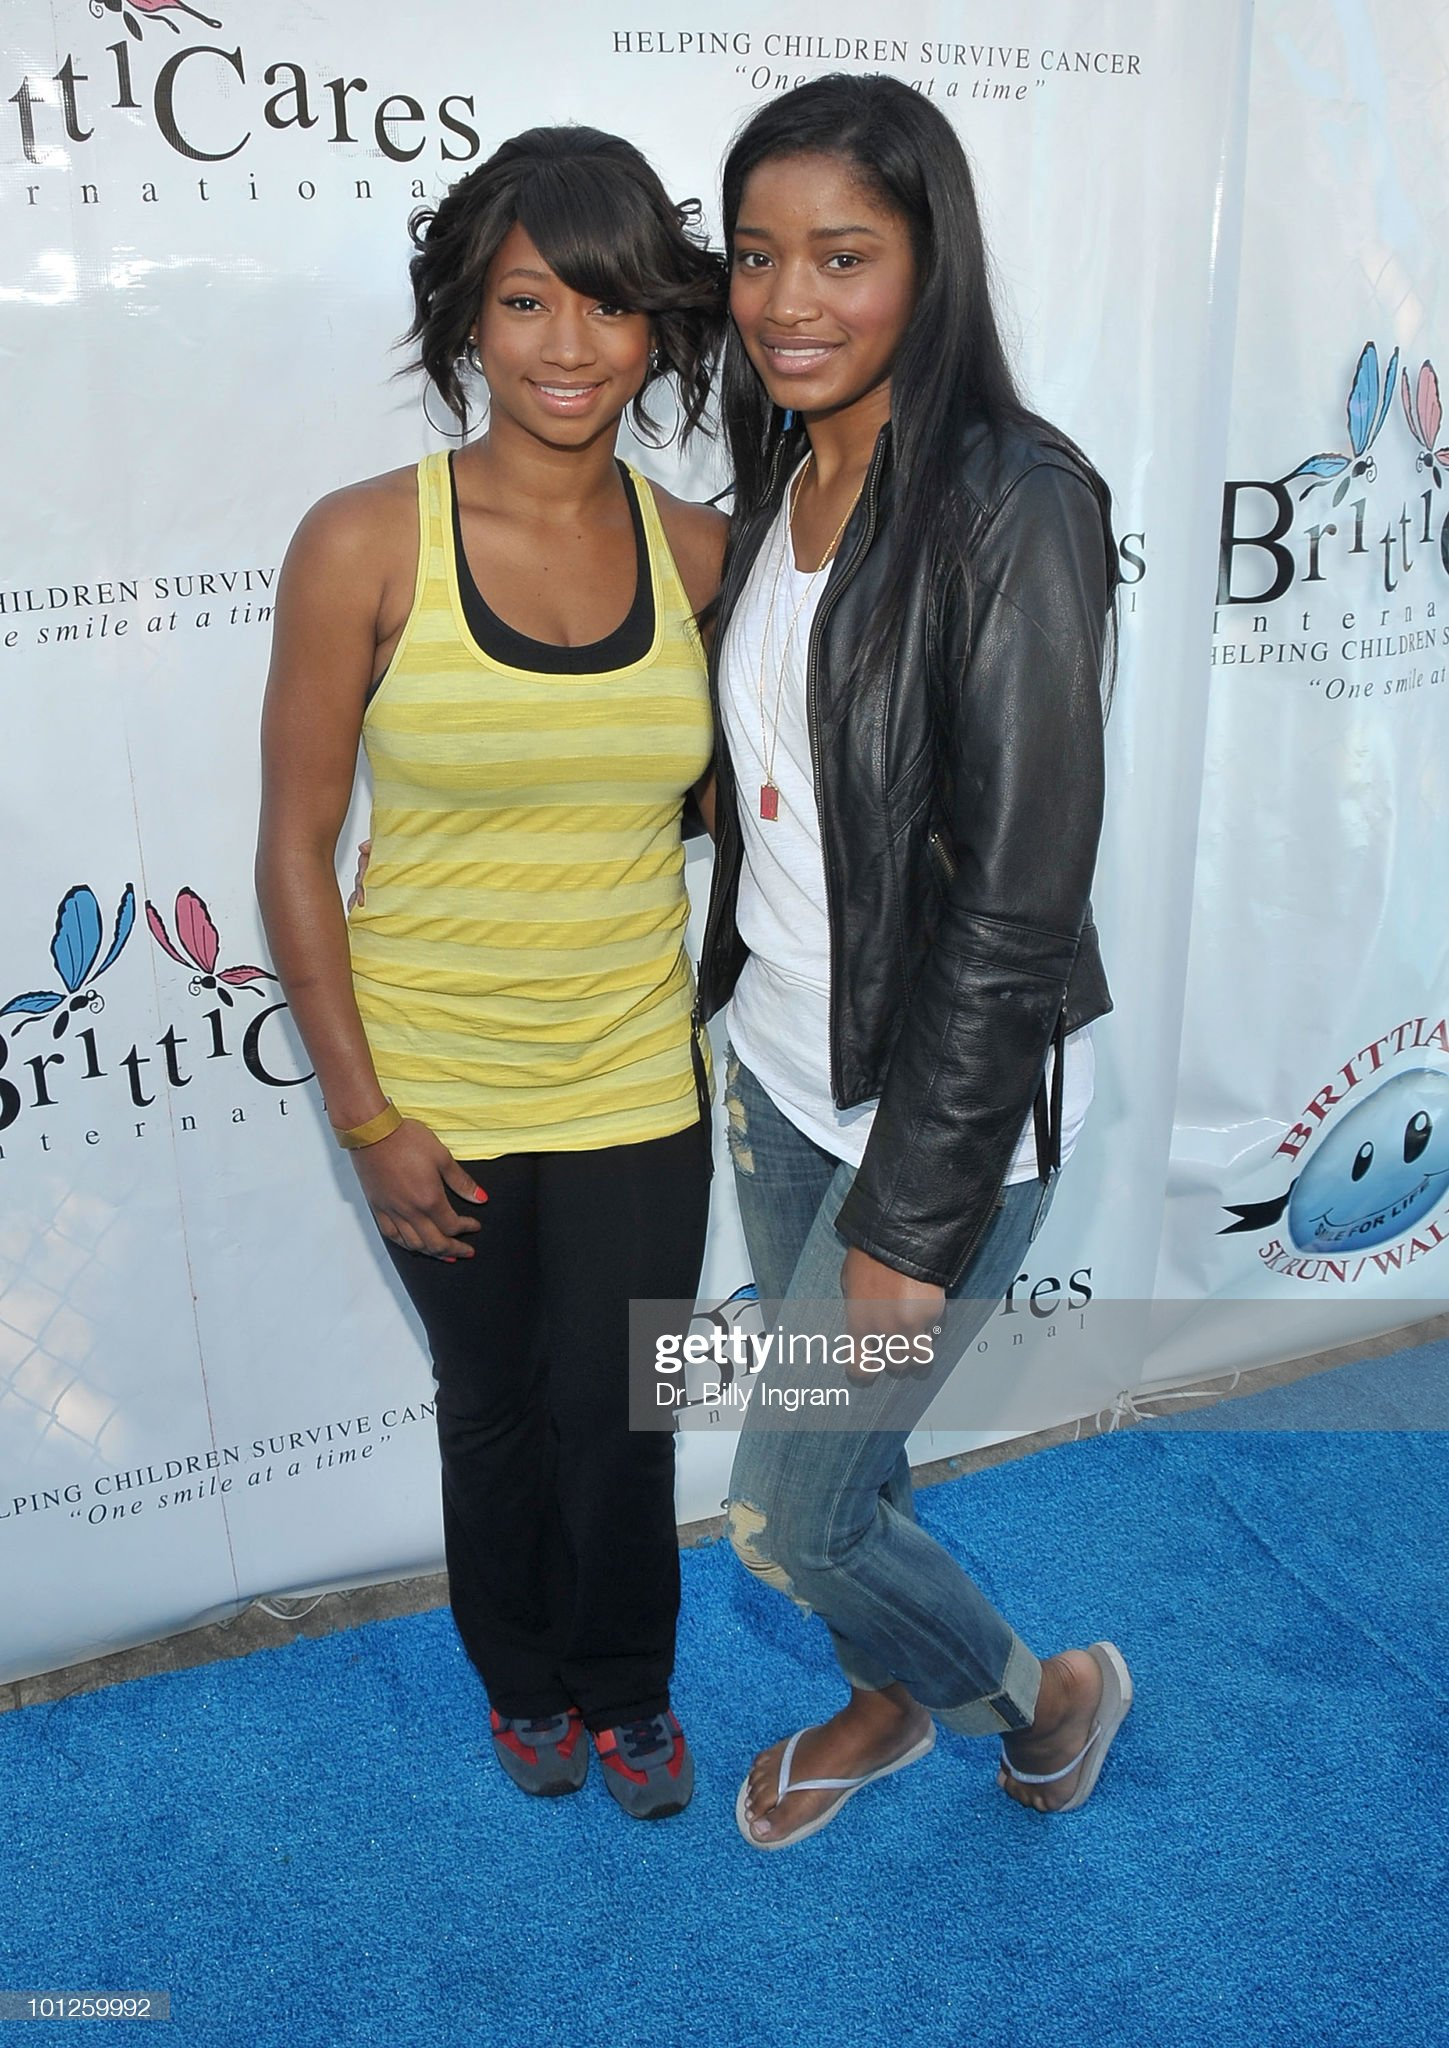 ¿Cuánto mide Monique Coleman? - Real height Actress-monique-coleman-and-actress-keke-palmer-attend-the-5th-annual-picture-id101259992?s=2048x2048